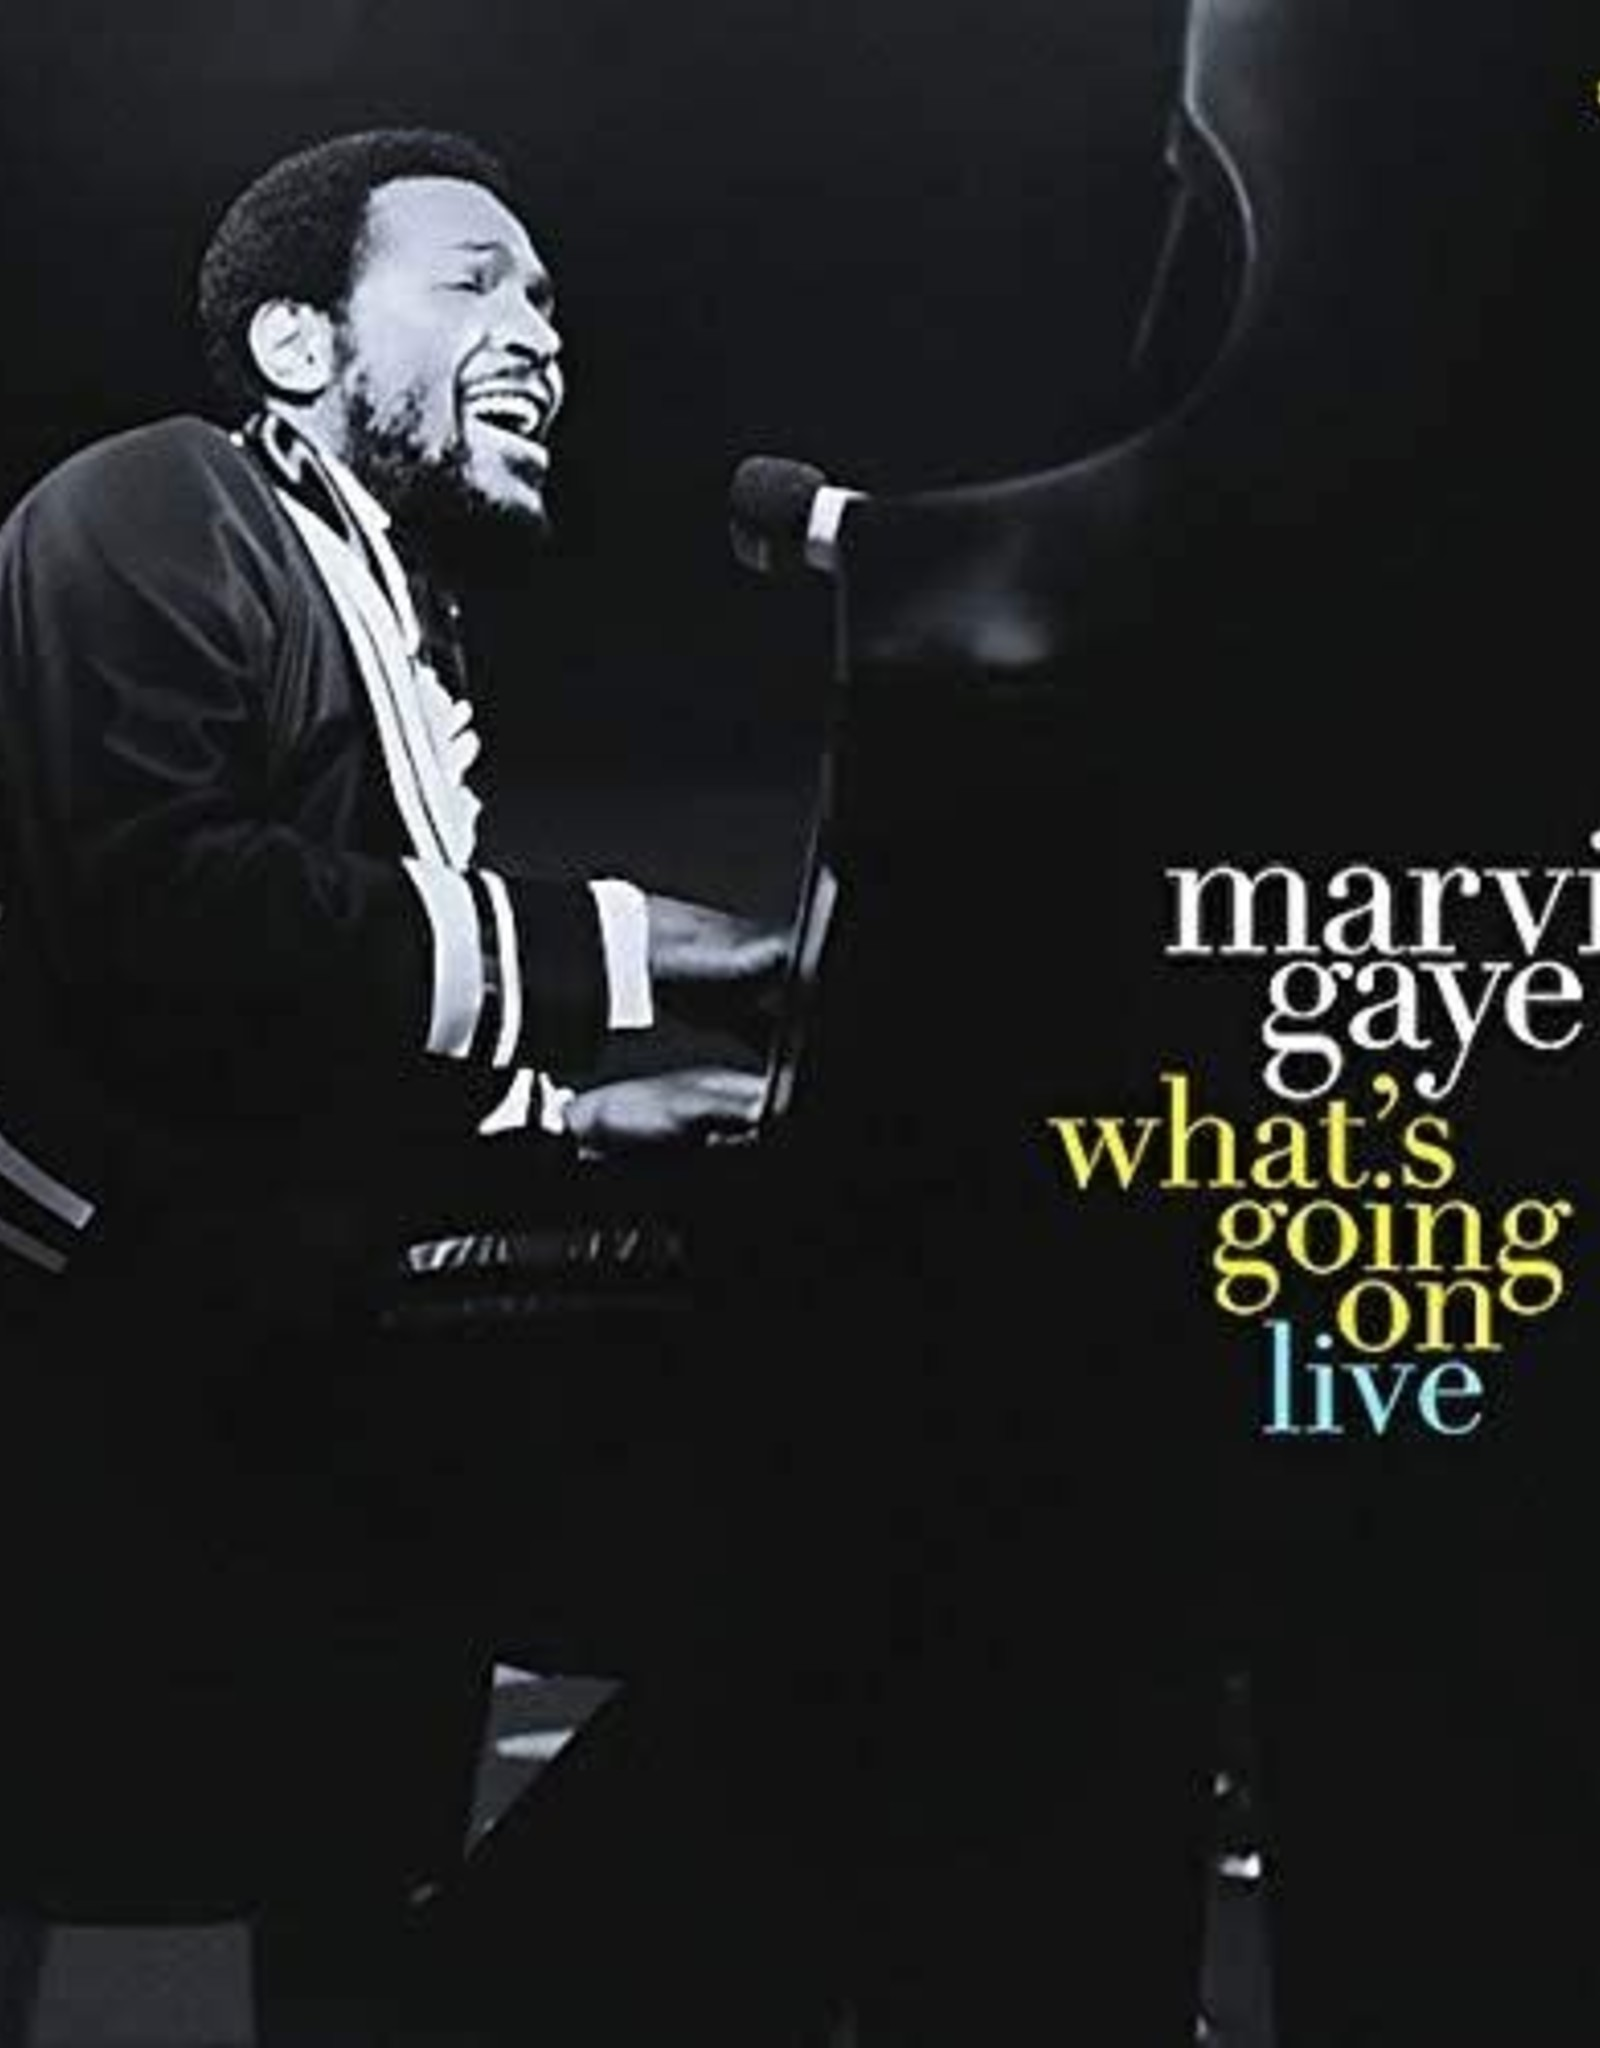 Marvin Gaye - What's Goin On Live (Kennedy Center, 1972)